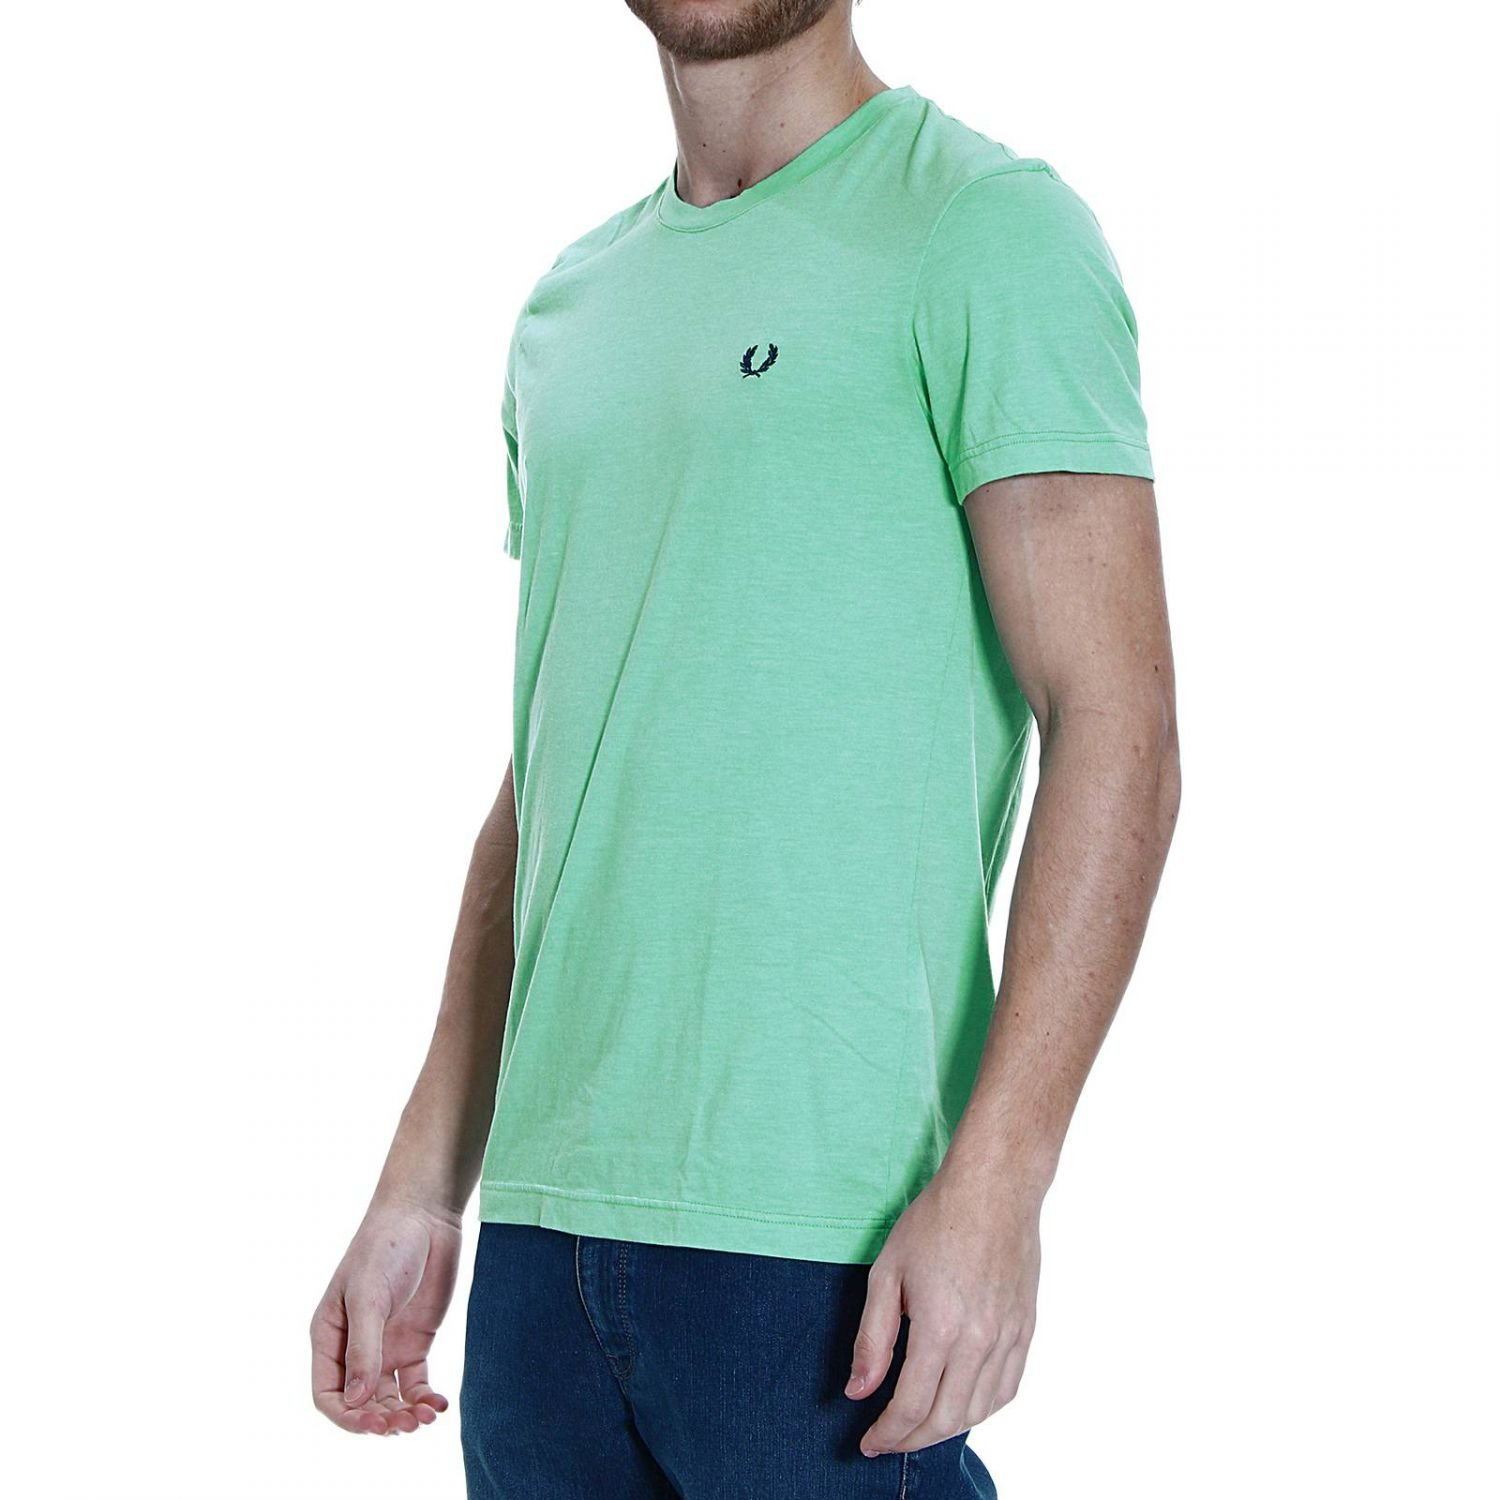 fred perry t shirt half sleeve crew neck logo basic in green for men. Black Bedroom Furniture Sets. Home Design Ideas